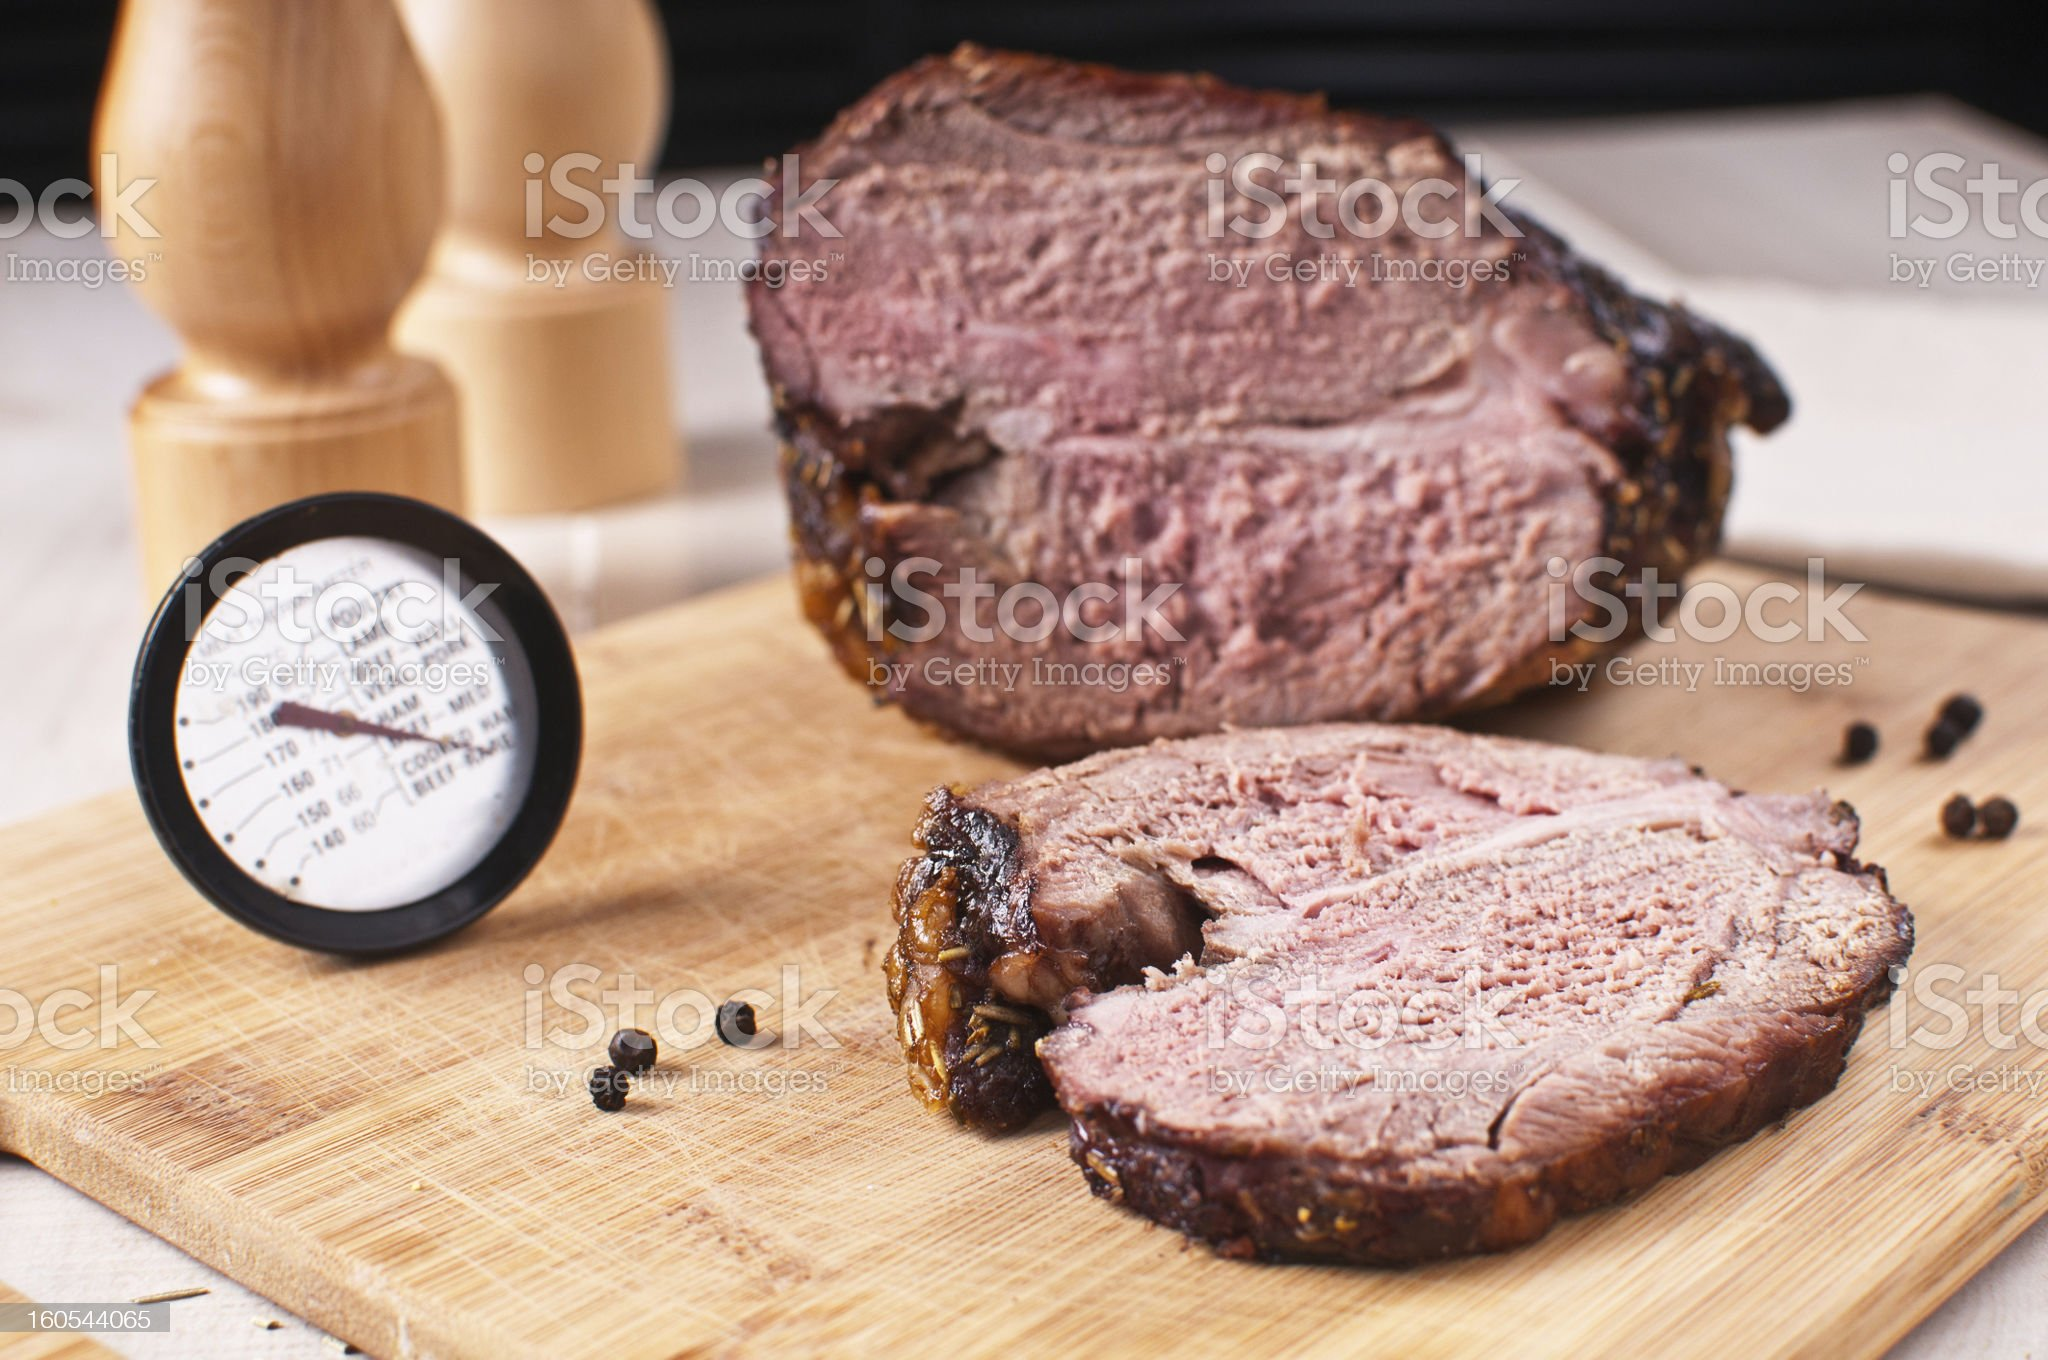 Roasted meat slice and thermometer royalty-free stock photo